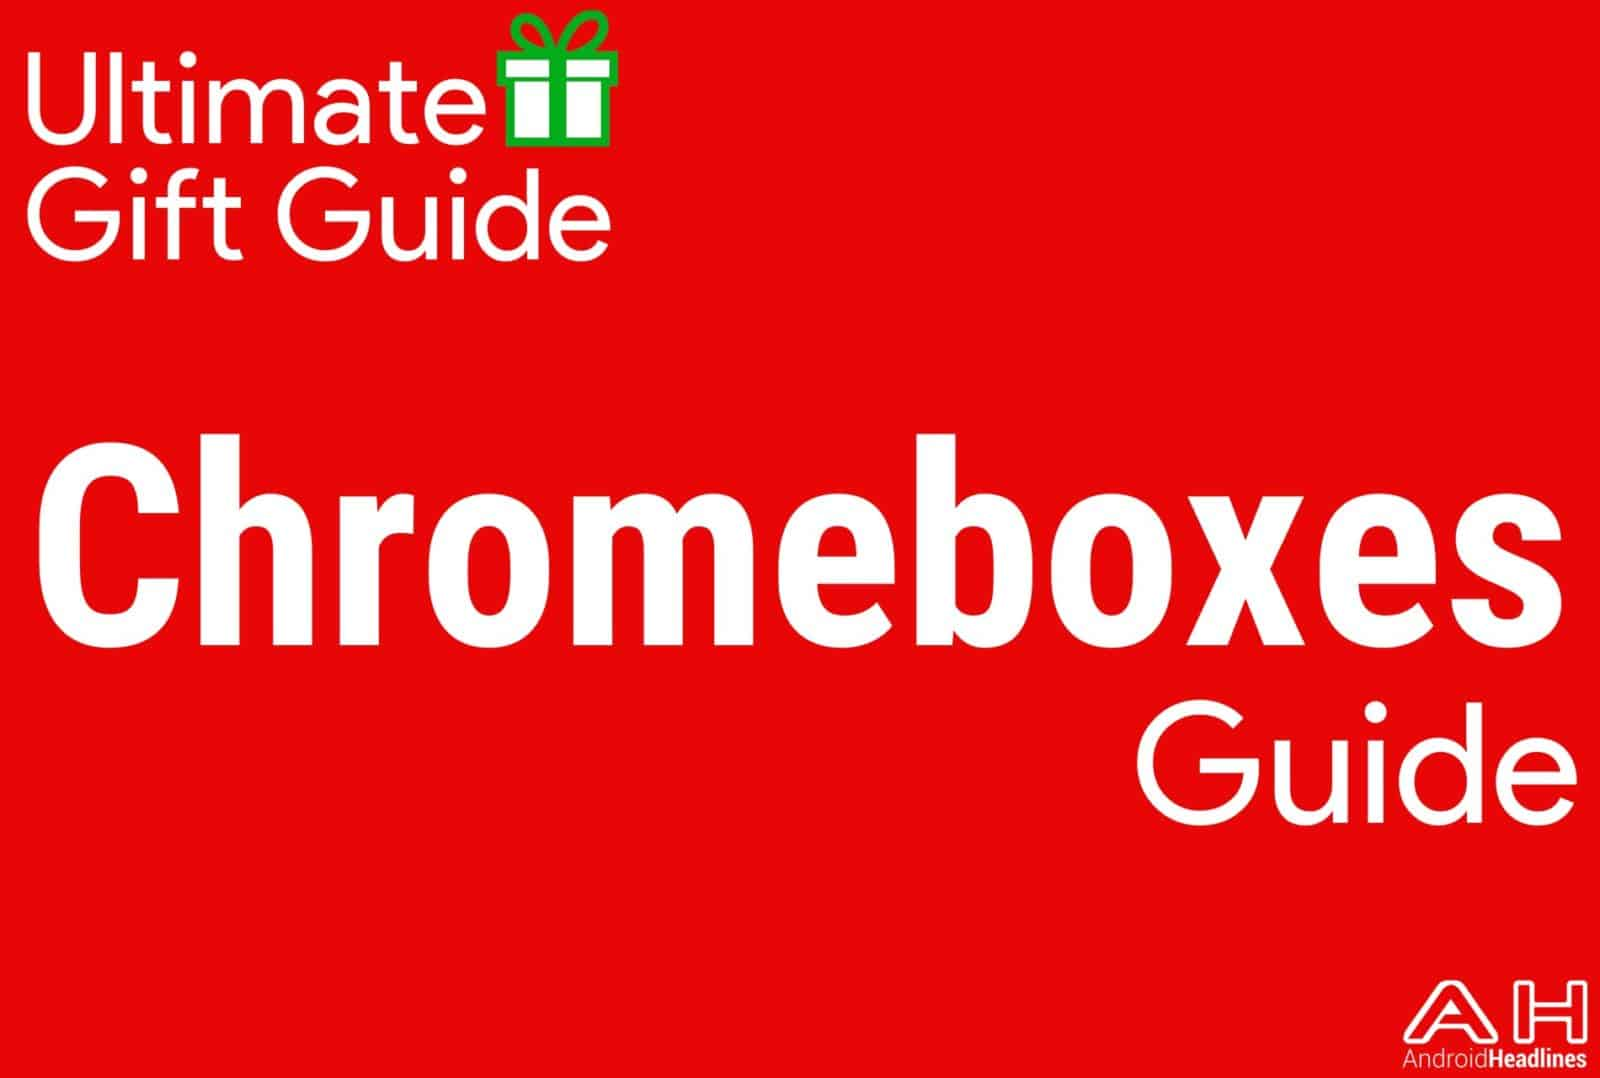 Chromeboxes - Holiday Gift Guide 2015